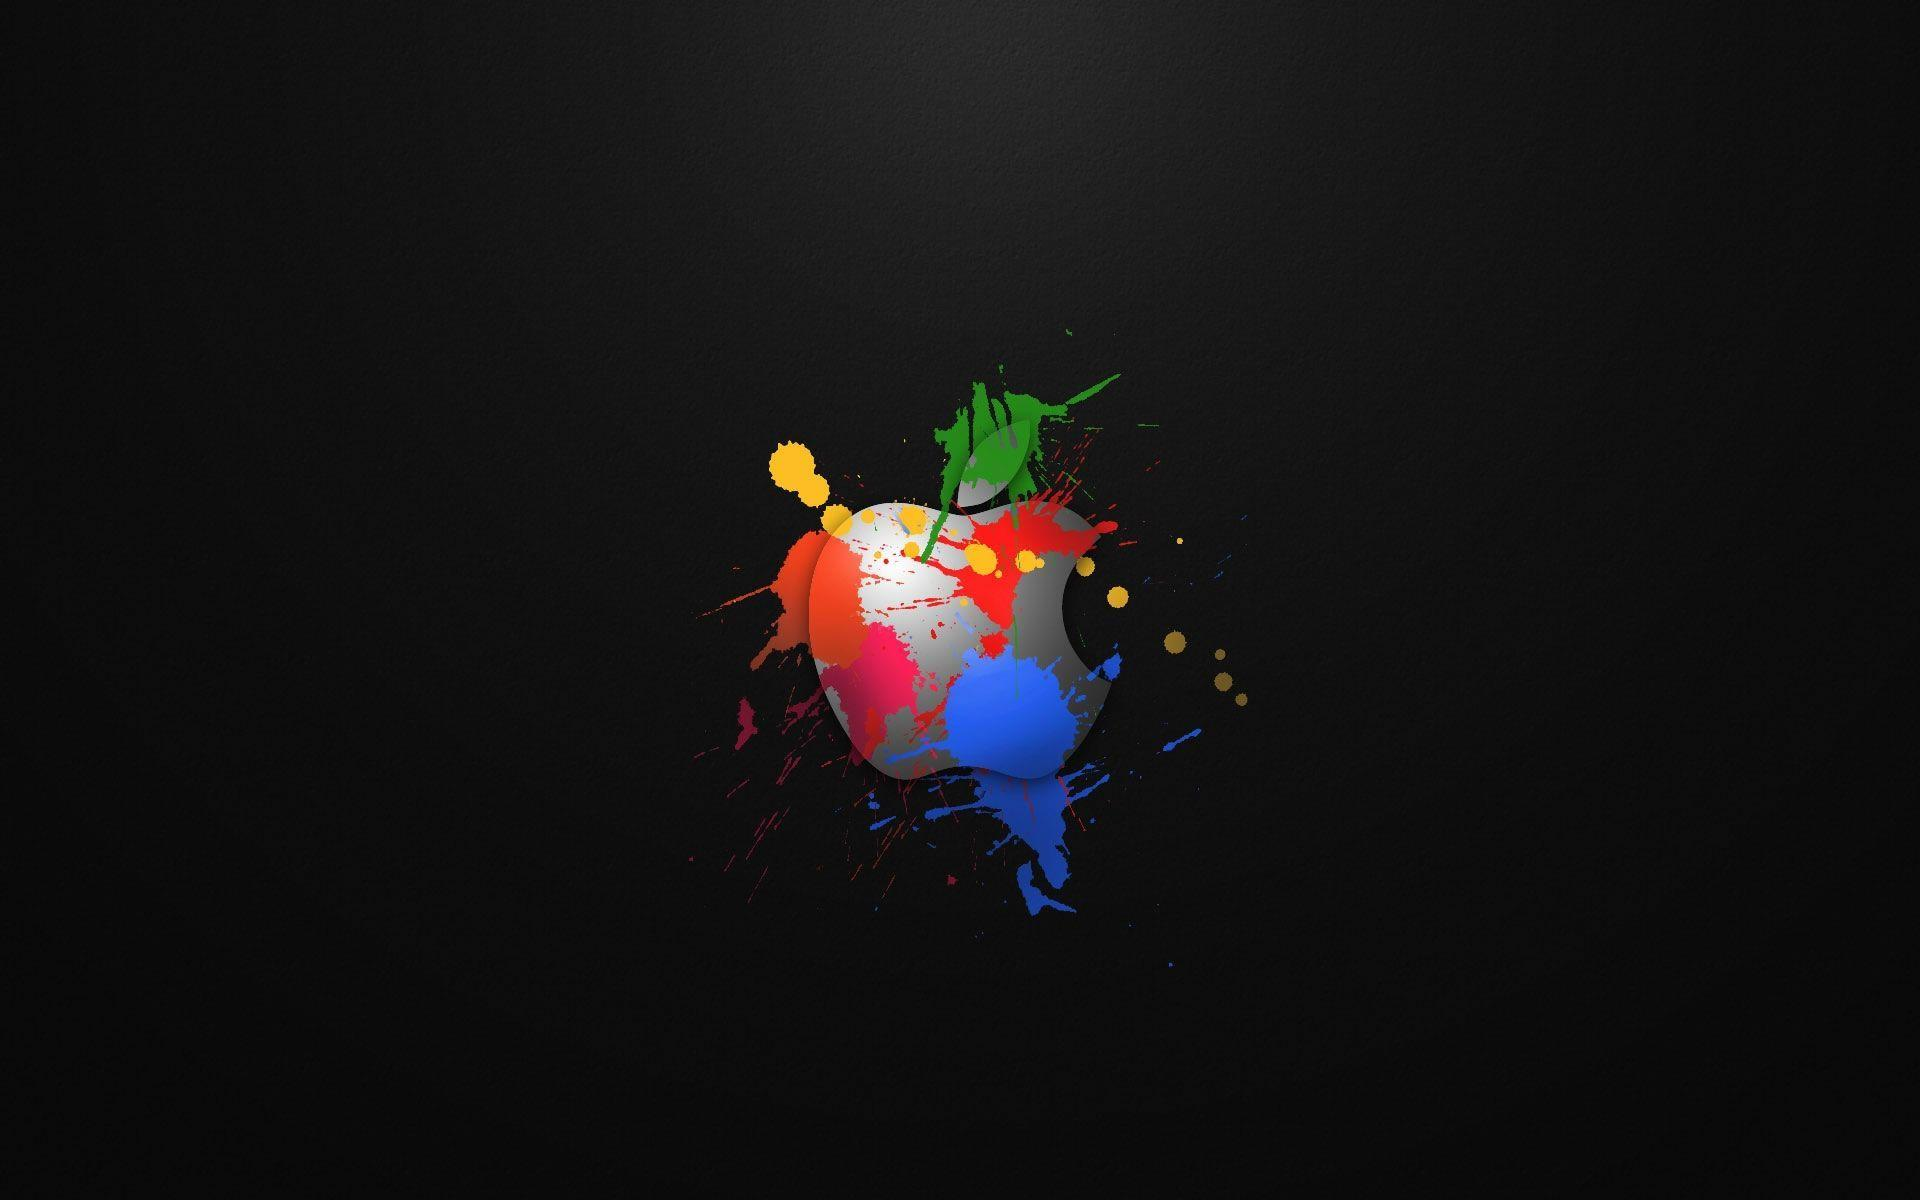 Hd Wallpapers Apple Mac wallpapers